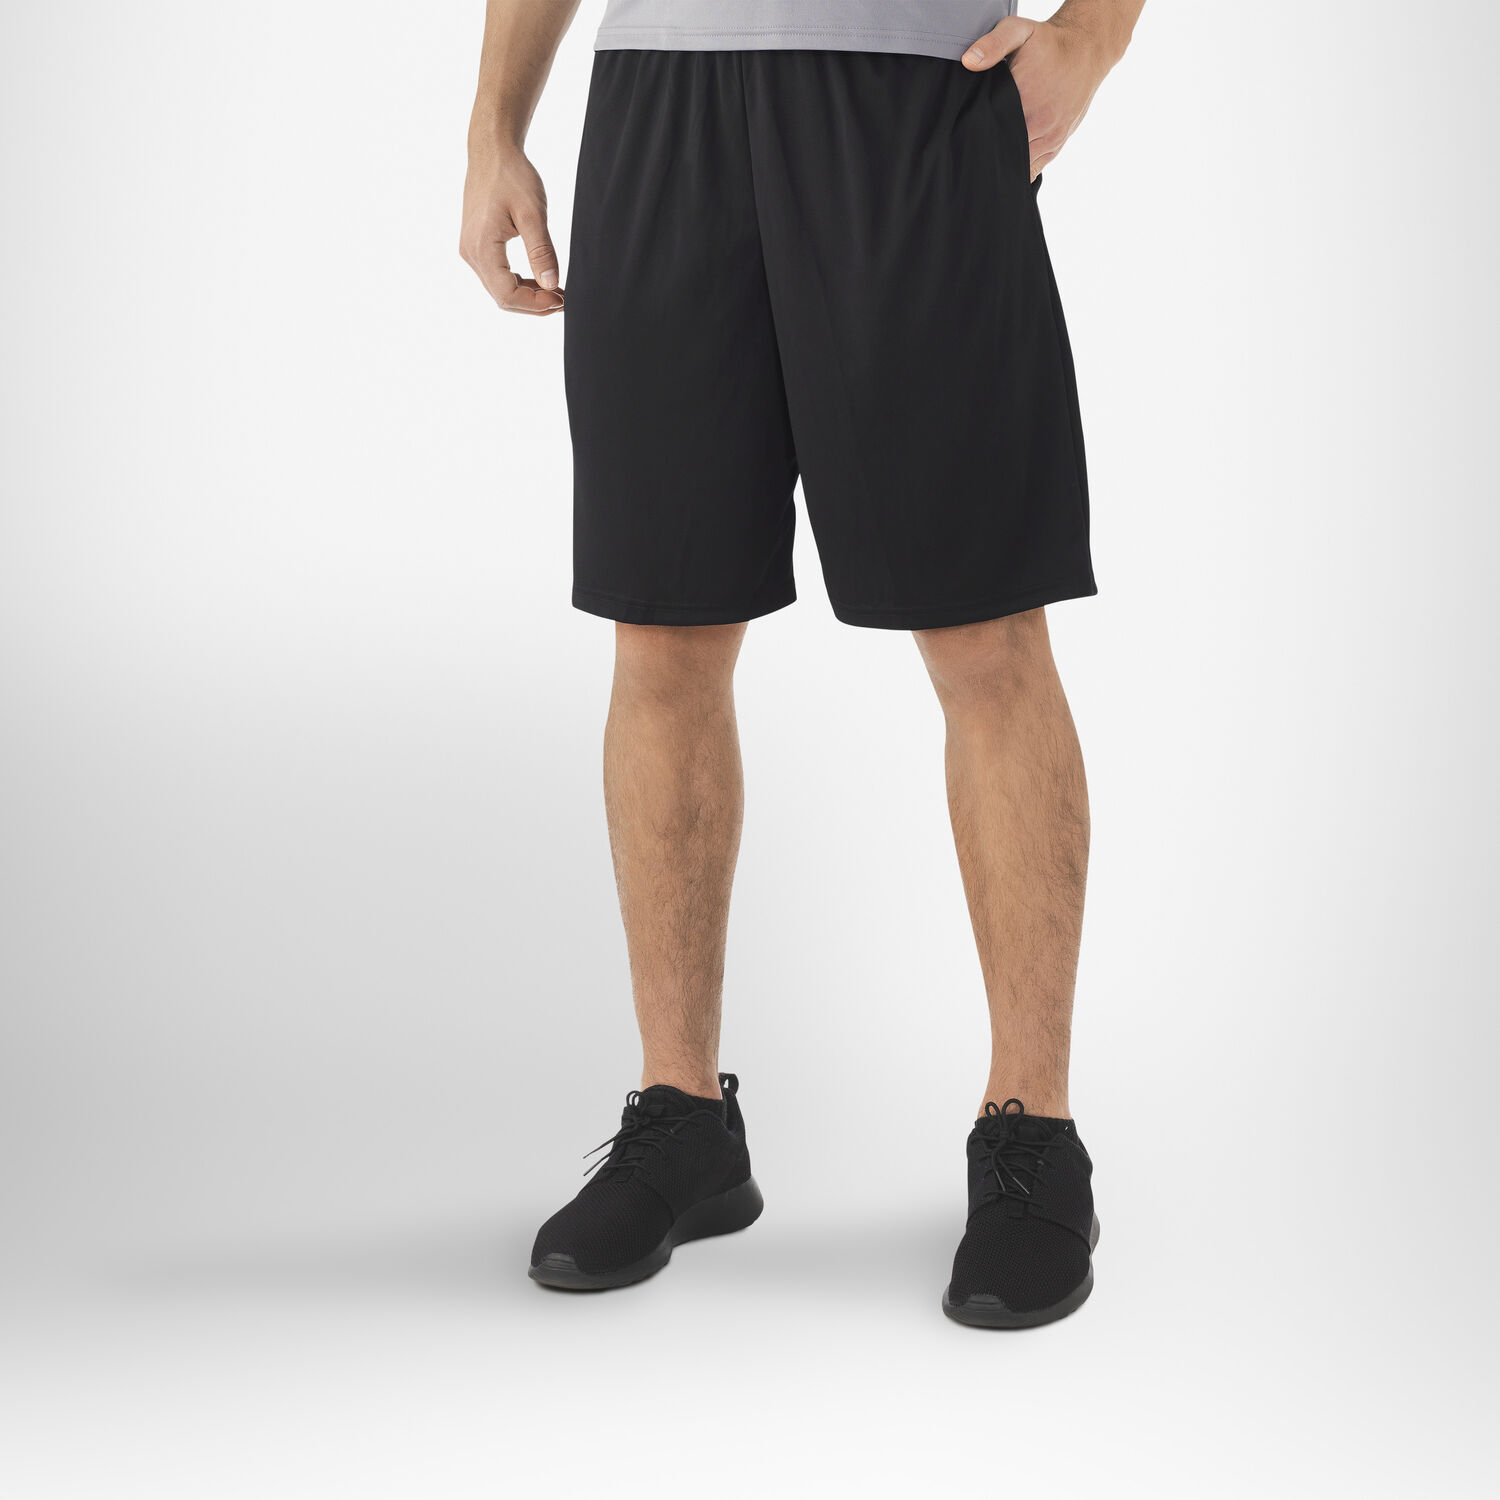 Men's Dri-Power® Essential Performance Shorts with Pockets - Russell US   Russell Athletic